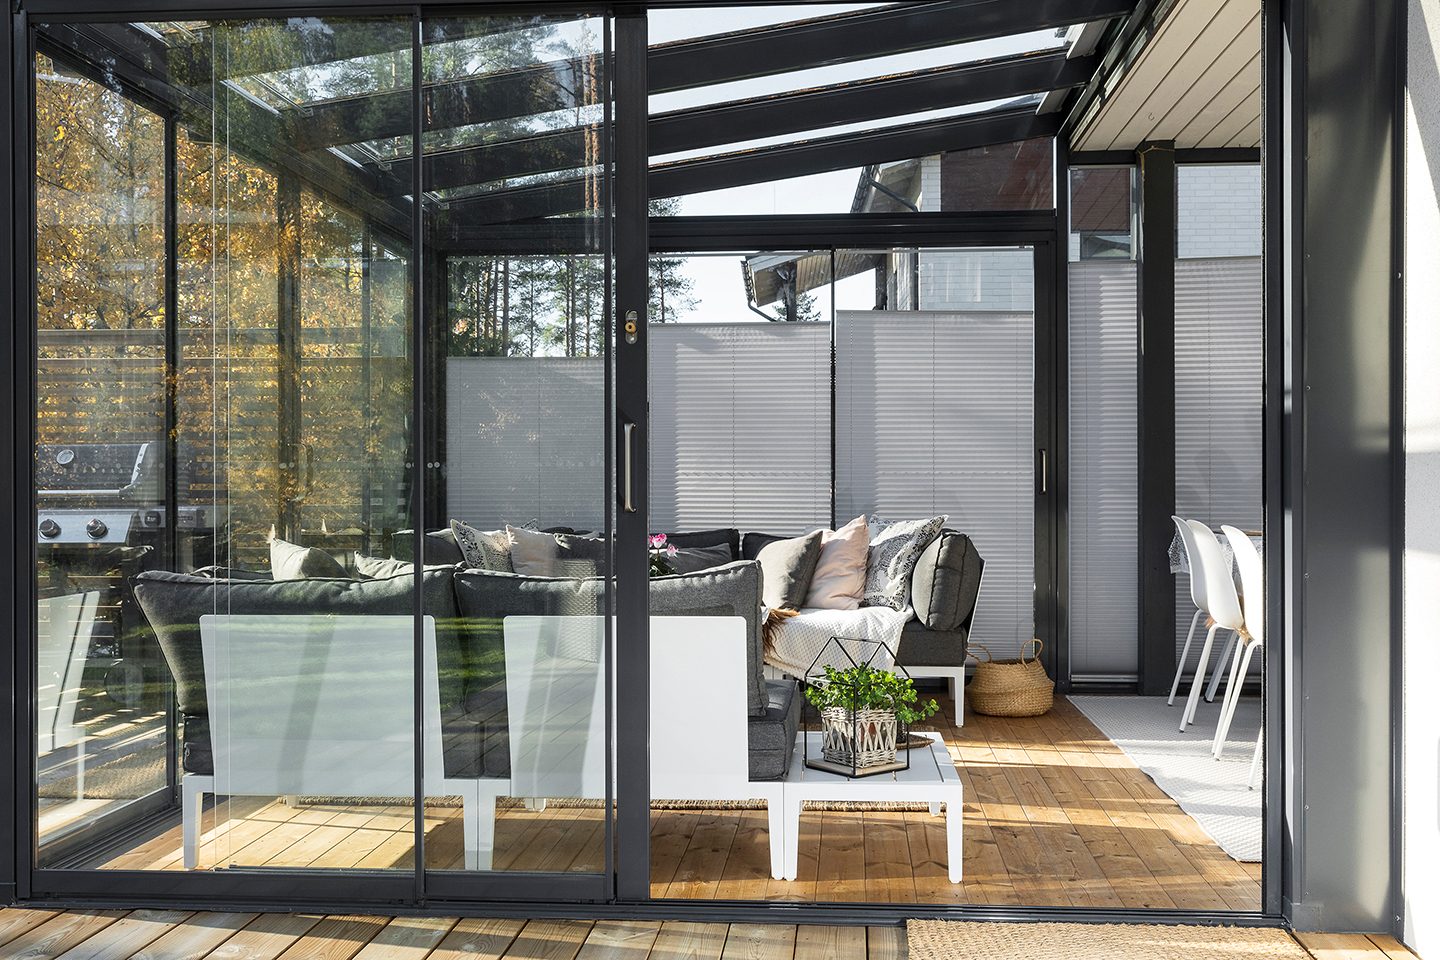 Lumon Canada Open House event in Etobicoke, sunrooms, patio covers, patio enclosures, retractable glass walls